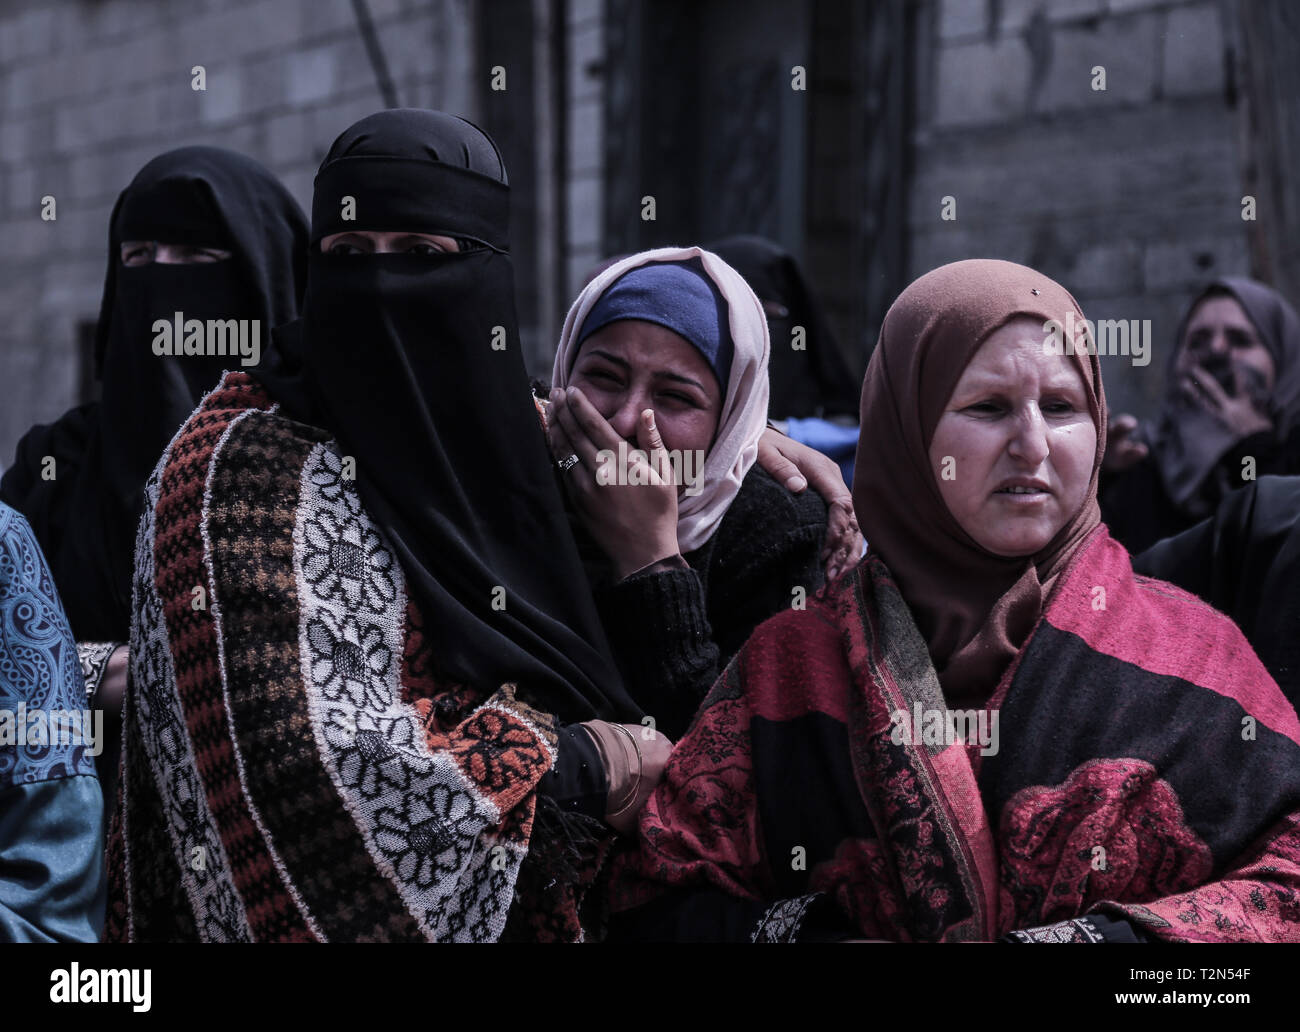 April 3, 2019 - Gaza, khan younis, Palestine - Relatives of the deceased are seen mourning during the funeral ceremony of Faris Abu Hijras, 26, who was killed by Israeli troops east of Khuza'a near the Israeli-Gaza border during the Palestinian Land Day demonstrations. (Credit Image: © Yousef Masoud/SOPA Images via ZUMA Wire) - Stock Image